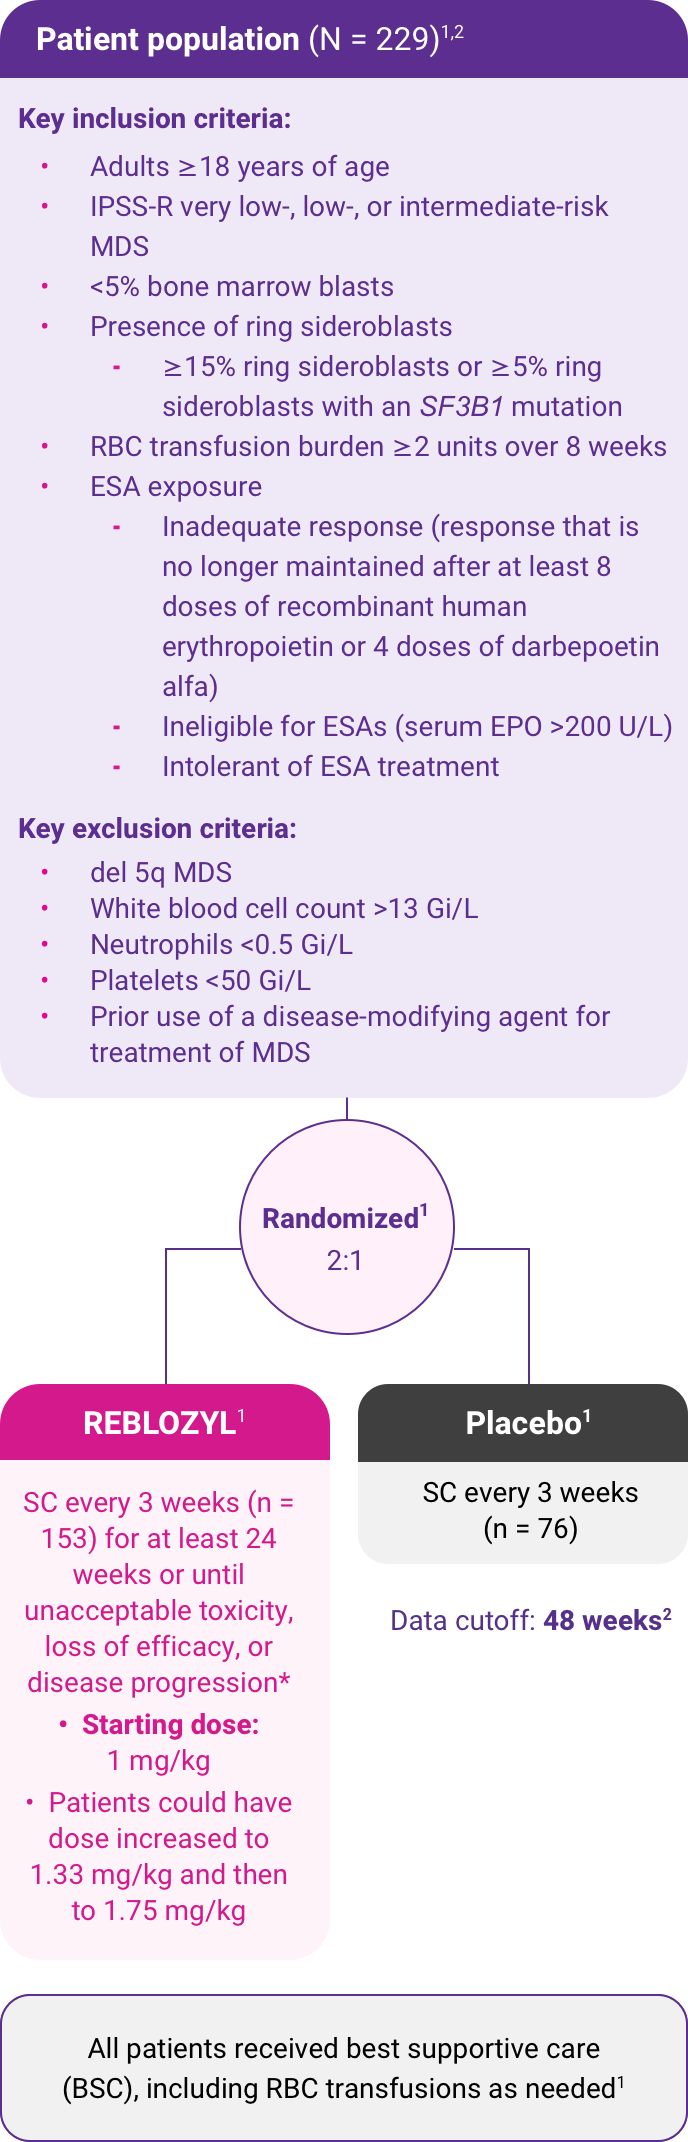 REBLOZYL was studied in the multicenter, randomized, double-blind, placebo-controlled, phase 3 MEDALIST trial.